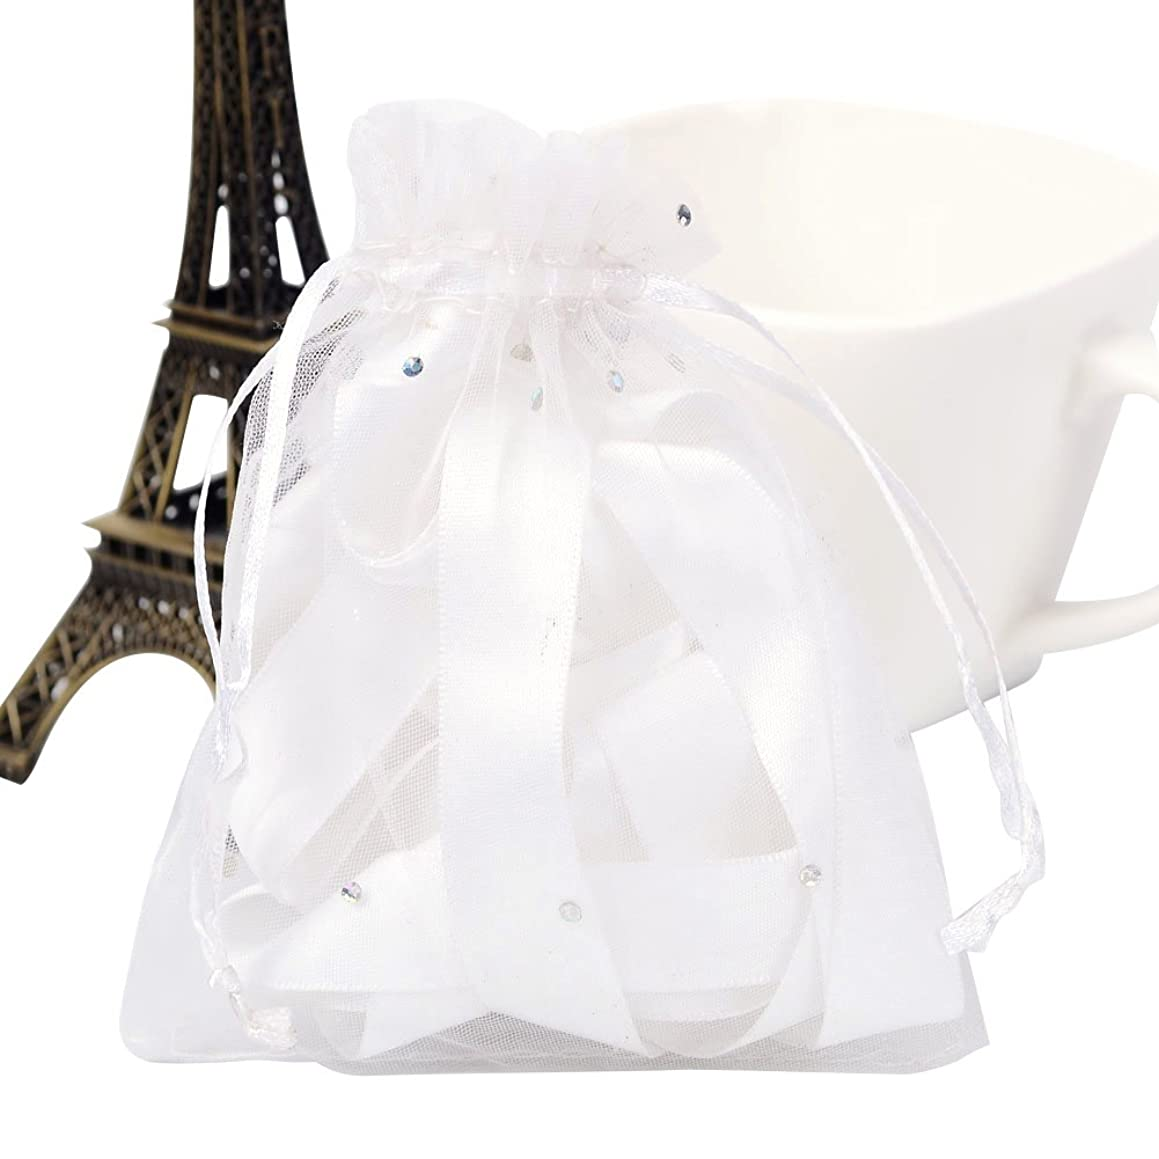 Pandahall 100 Pcs 4x4.7 Inches White Organza Drawstring Pouches Jewelry Party Wedding Favor Gift Bags with Glitter Powder